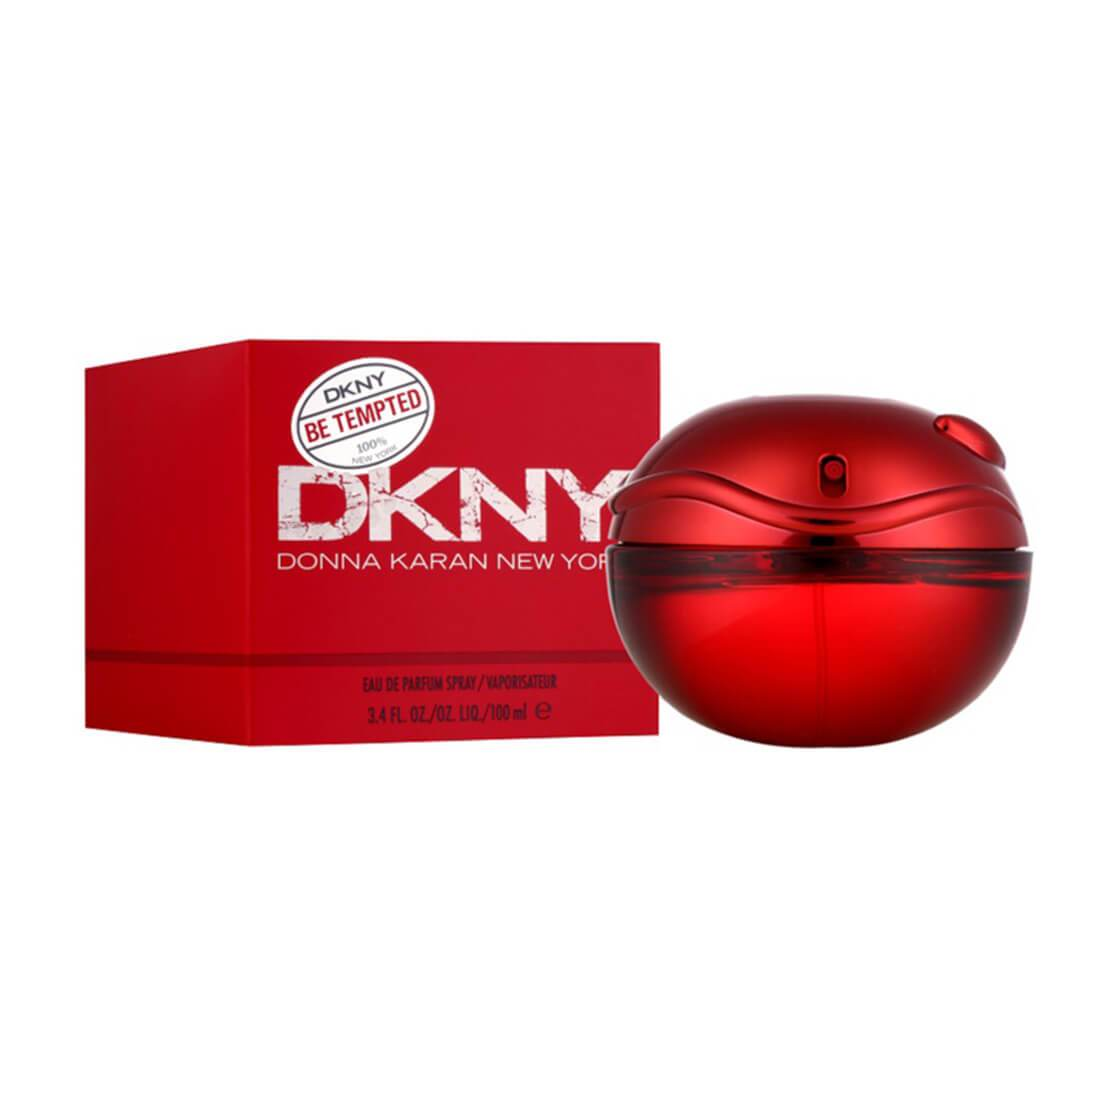 Dkny Be Tempted EDP Perfume For Women - 100ml